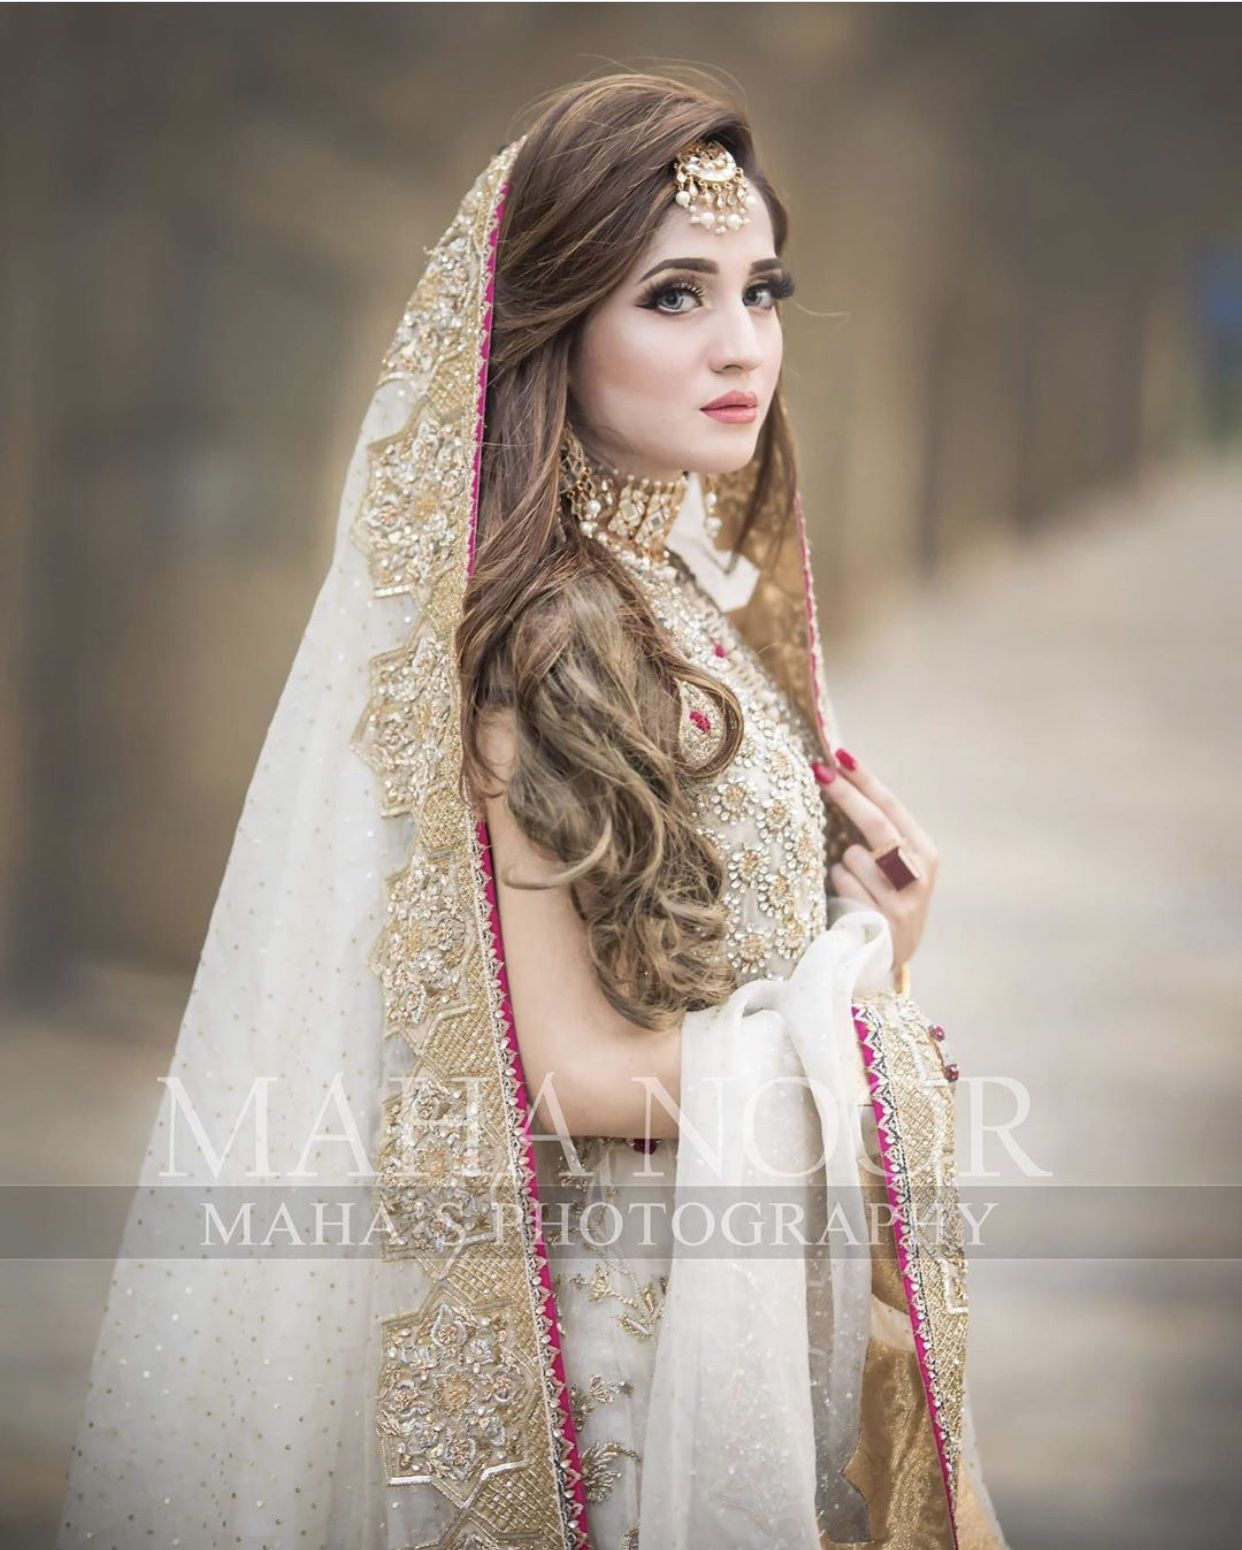 Hairstyles Pakistani Waleema: Pin By Soha Gohar On My Saves